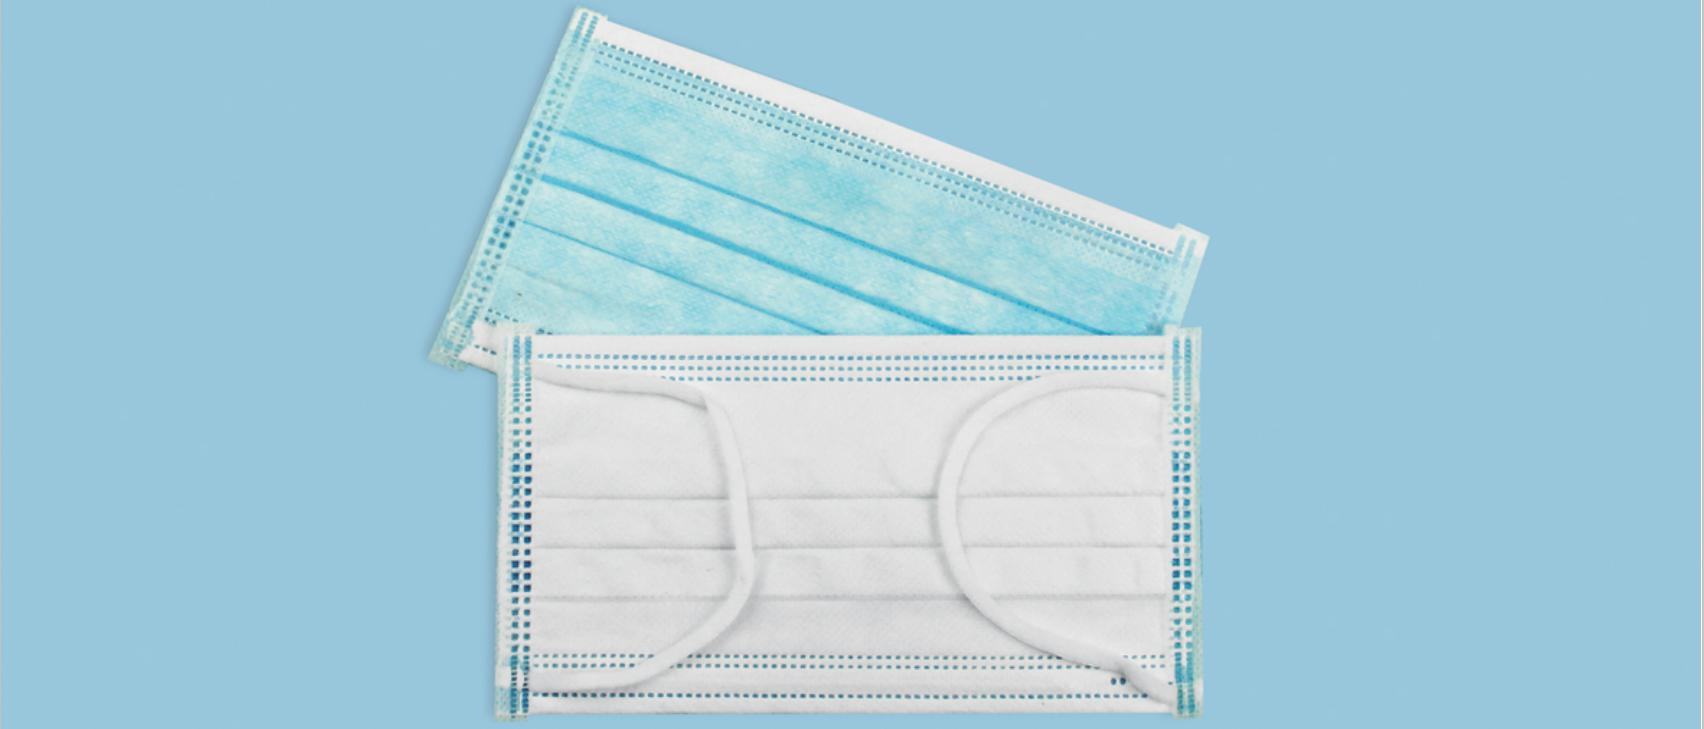 disposable medical face mask